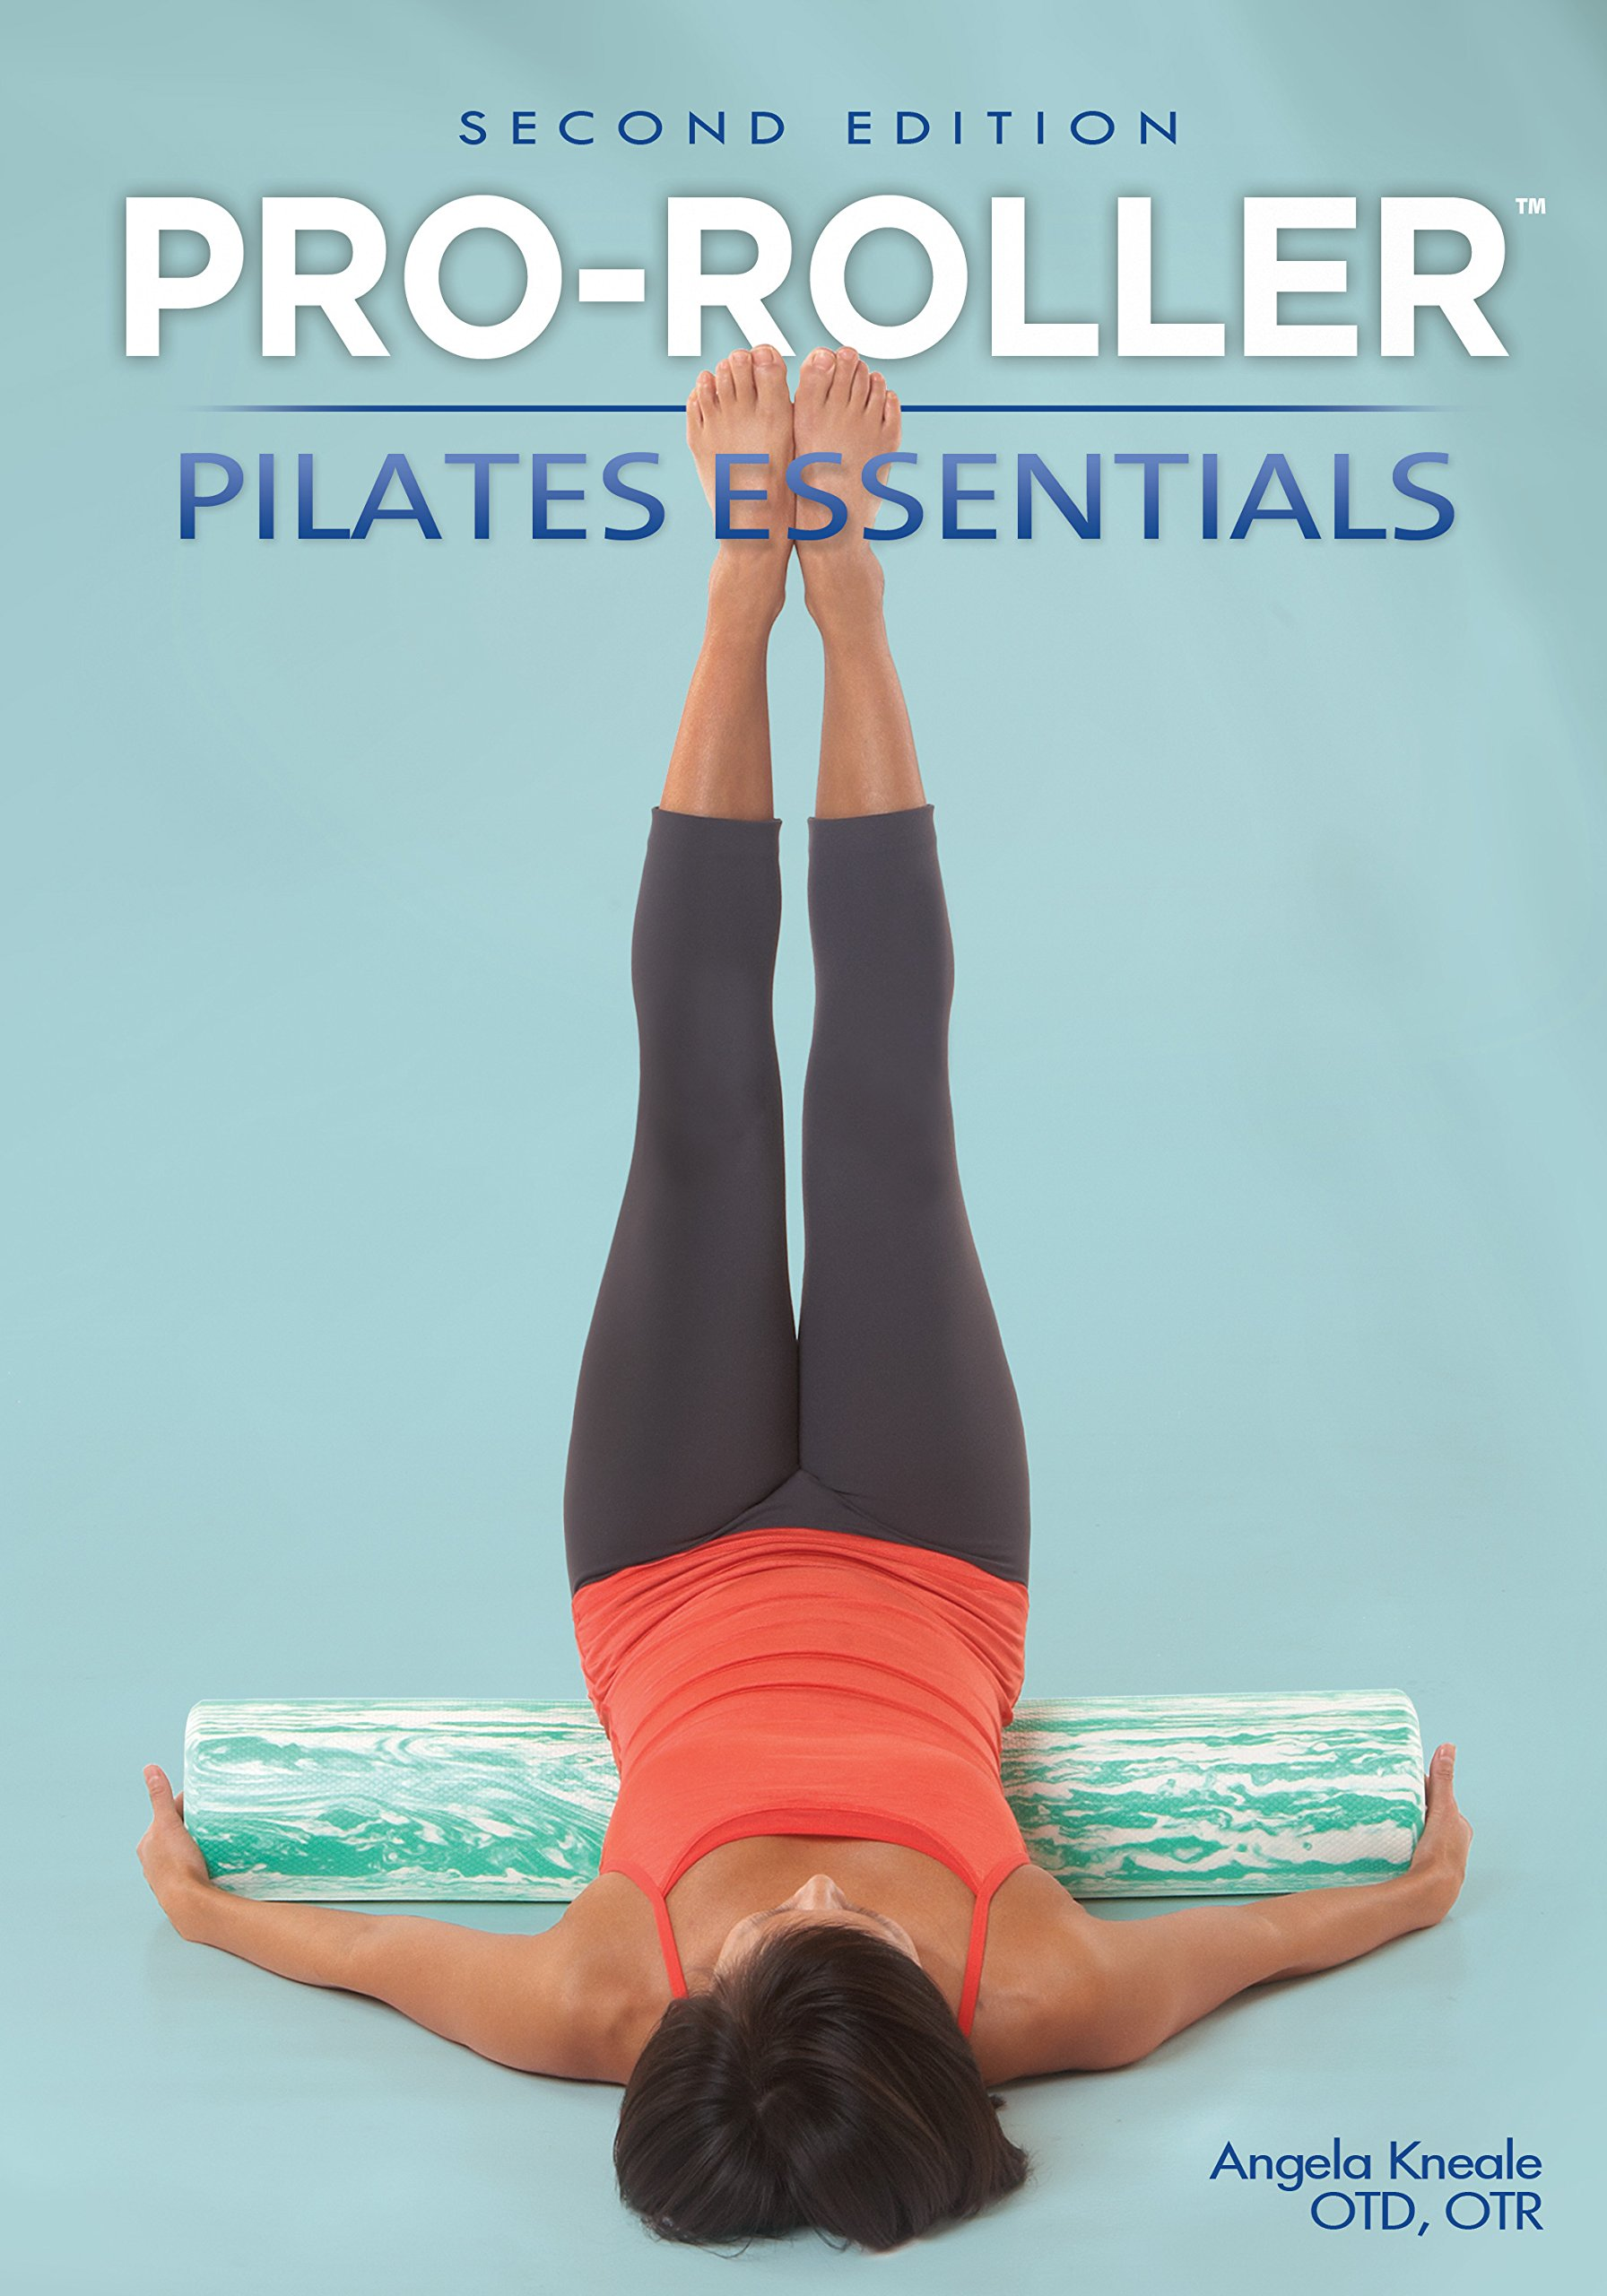 PRO-ROLLER Pilates Essentials 2nd Edition (8210-2) pdf